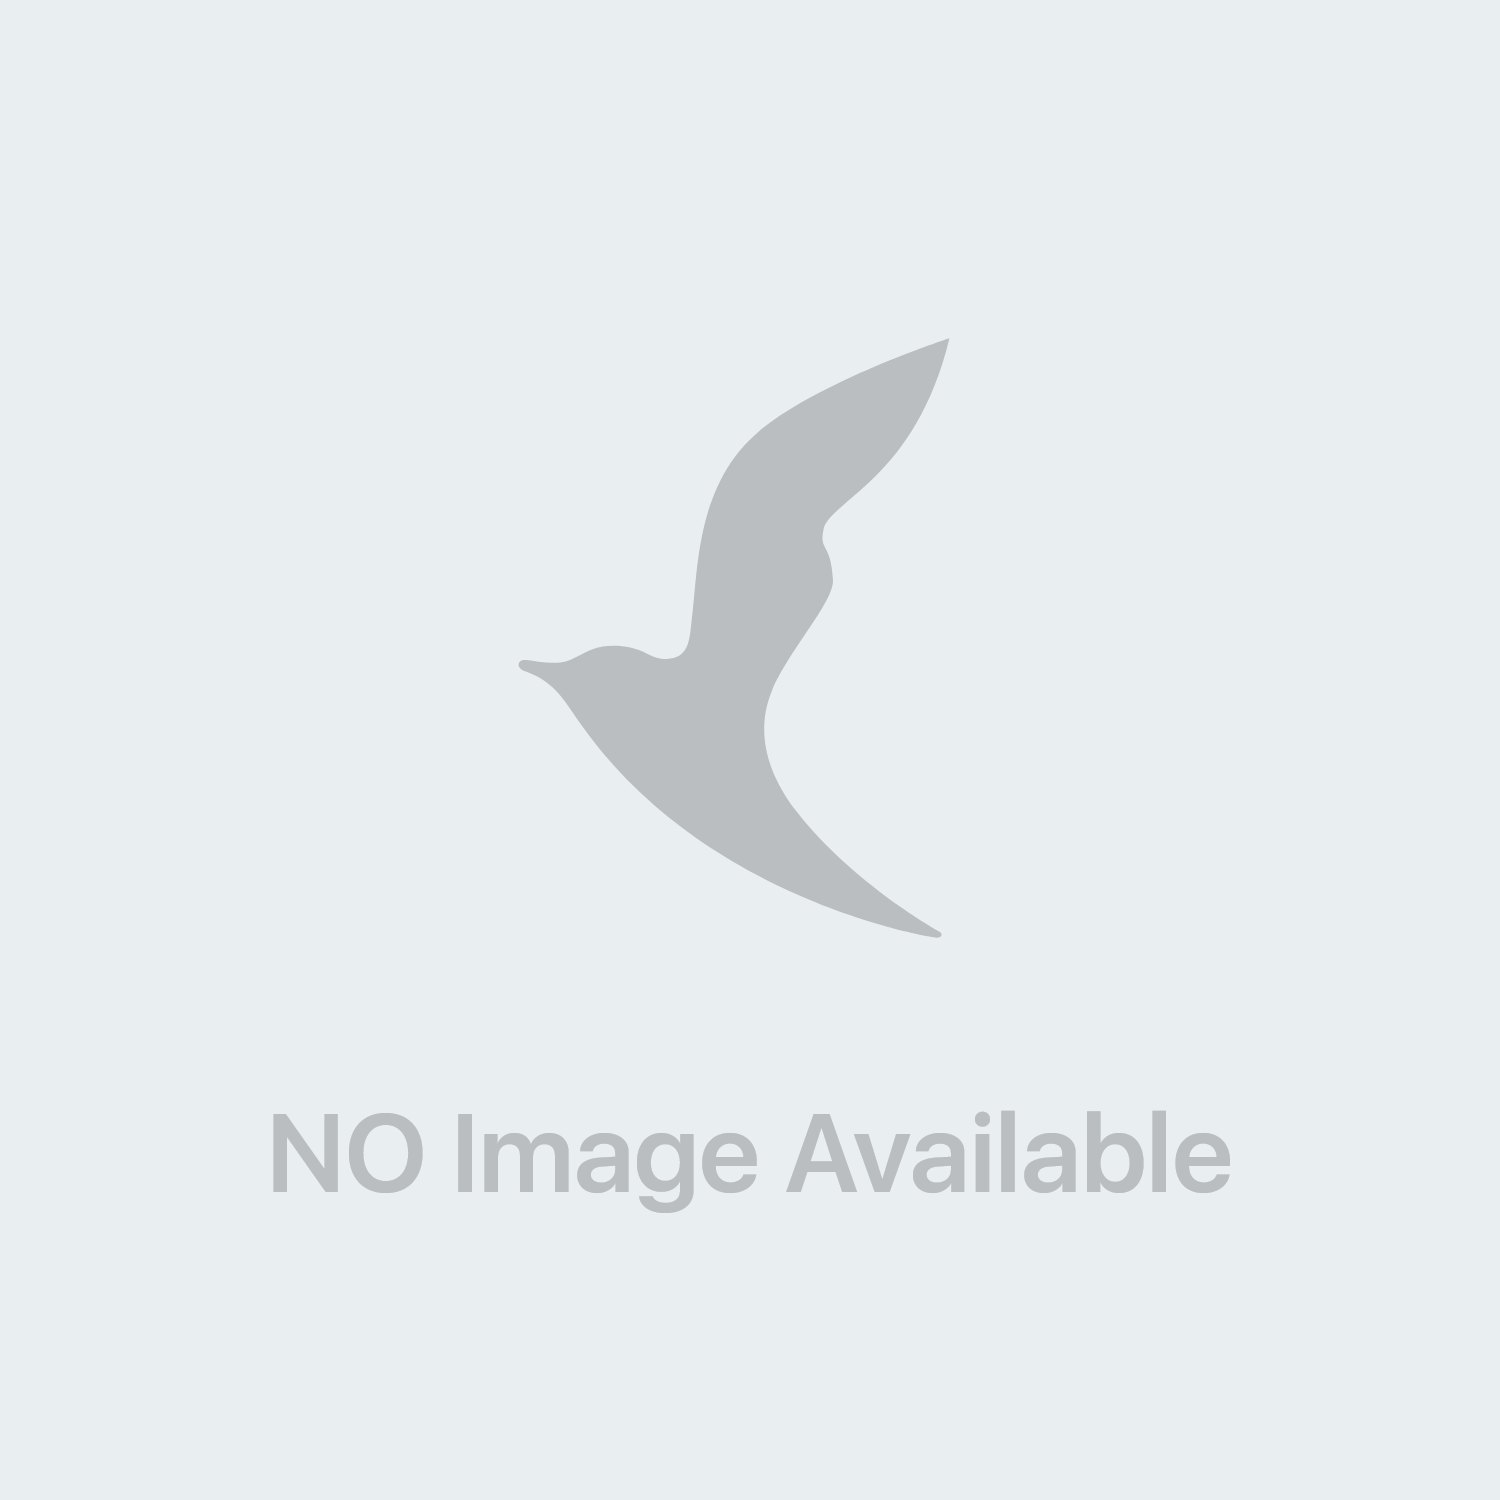 Durex Pleasure Ring Anello Stimolante Per Lui